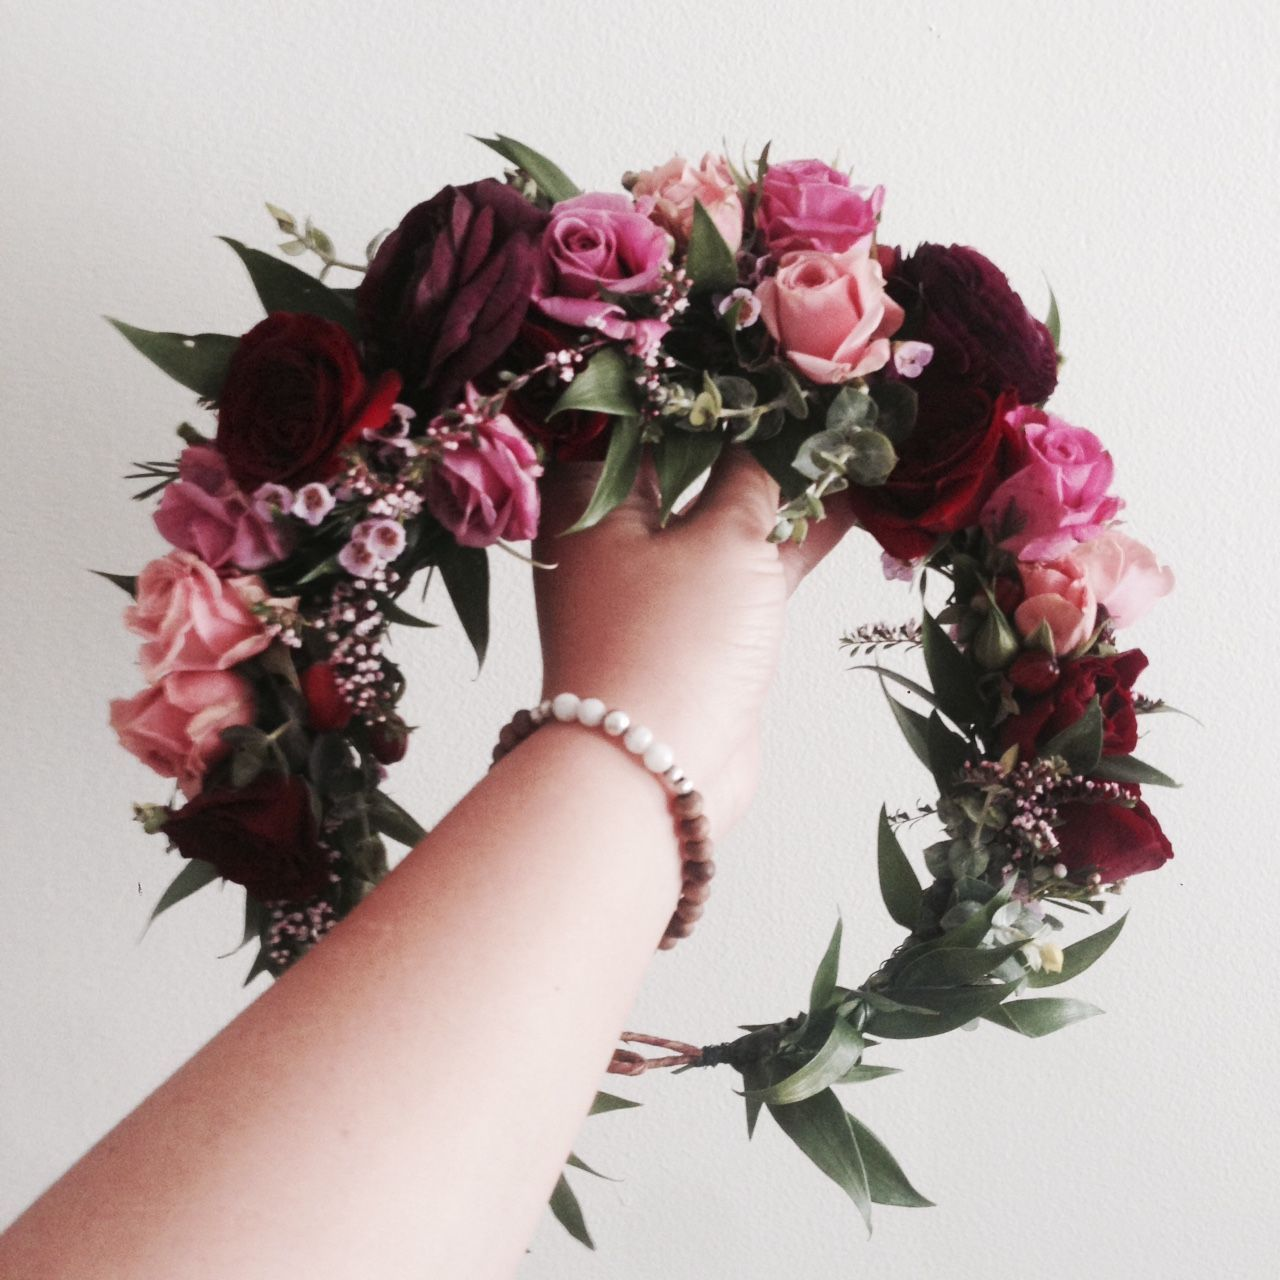 The Melissa No 2 Crown Burgundy Purple Ranunculus Mixed Shades Of Blush Pink And Two Toned Foliage Www With Images Flower Crown Wedding Pink Flower Crown Flower Crown